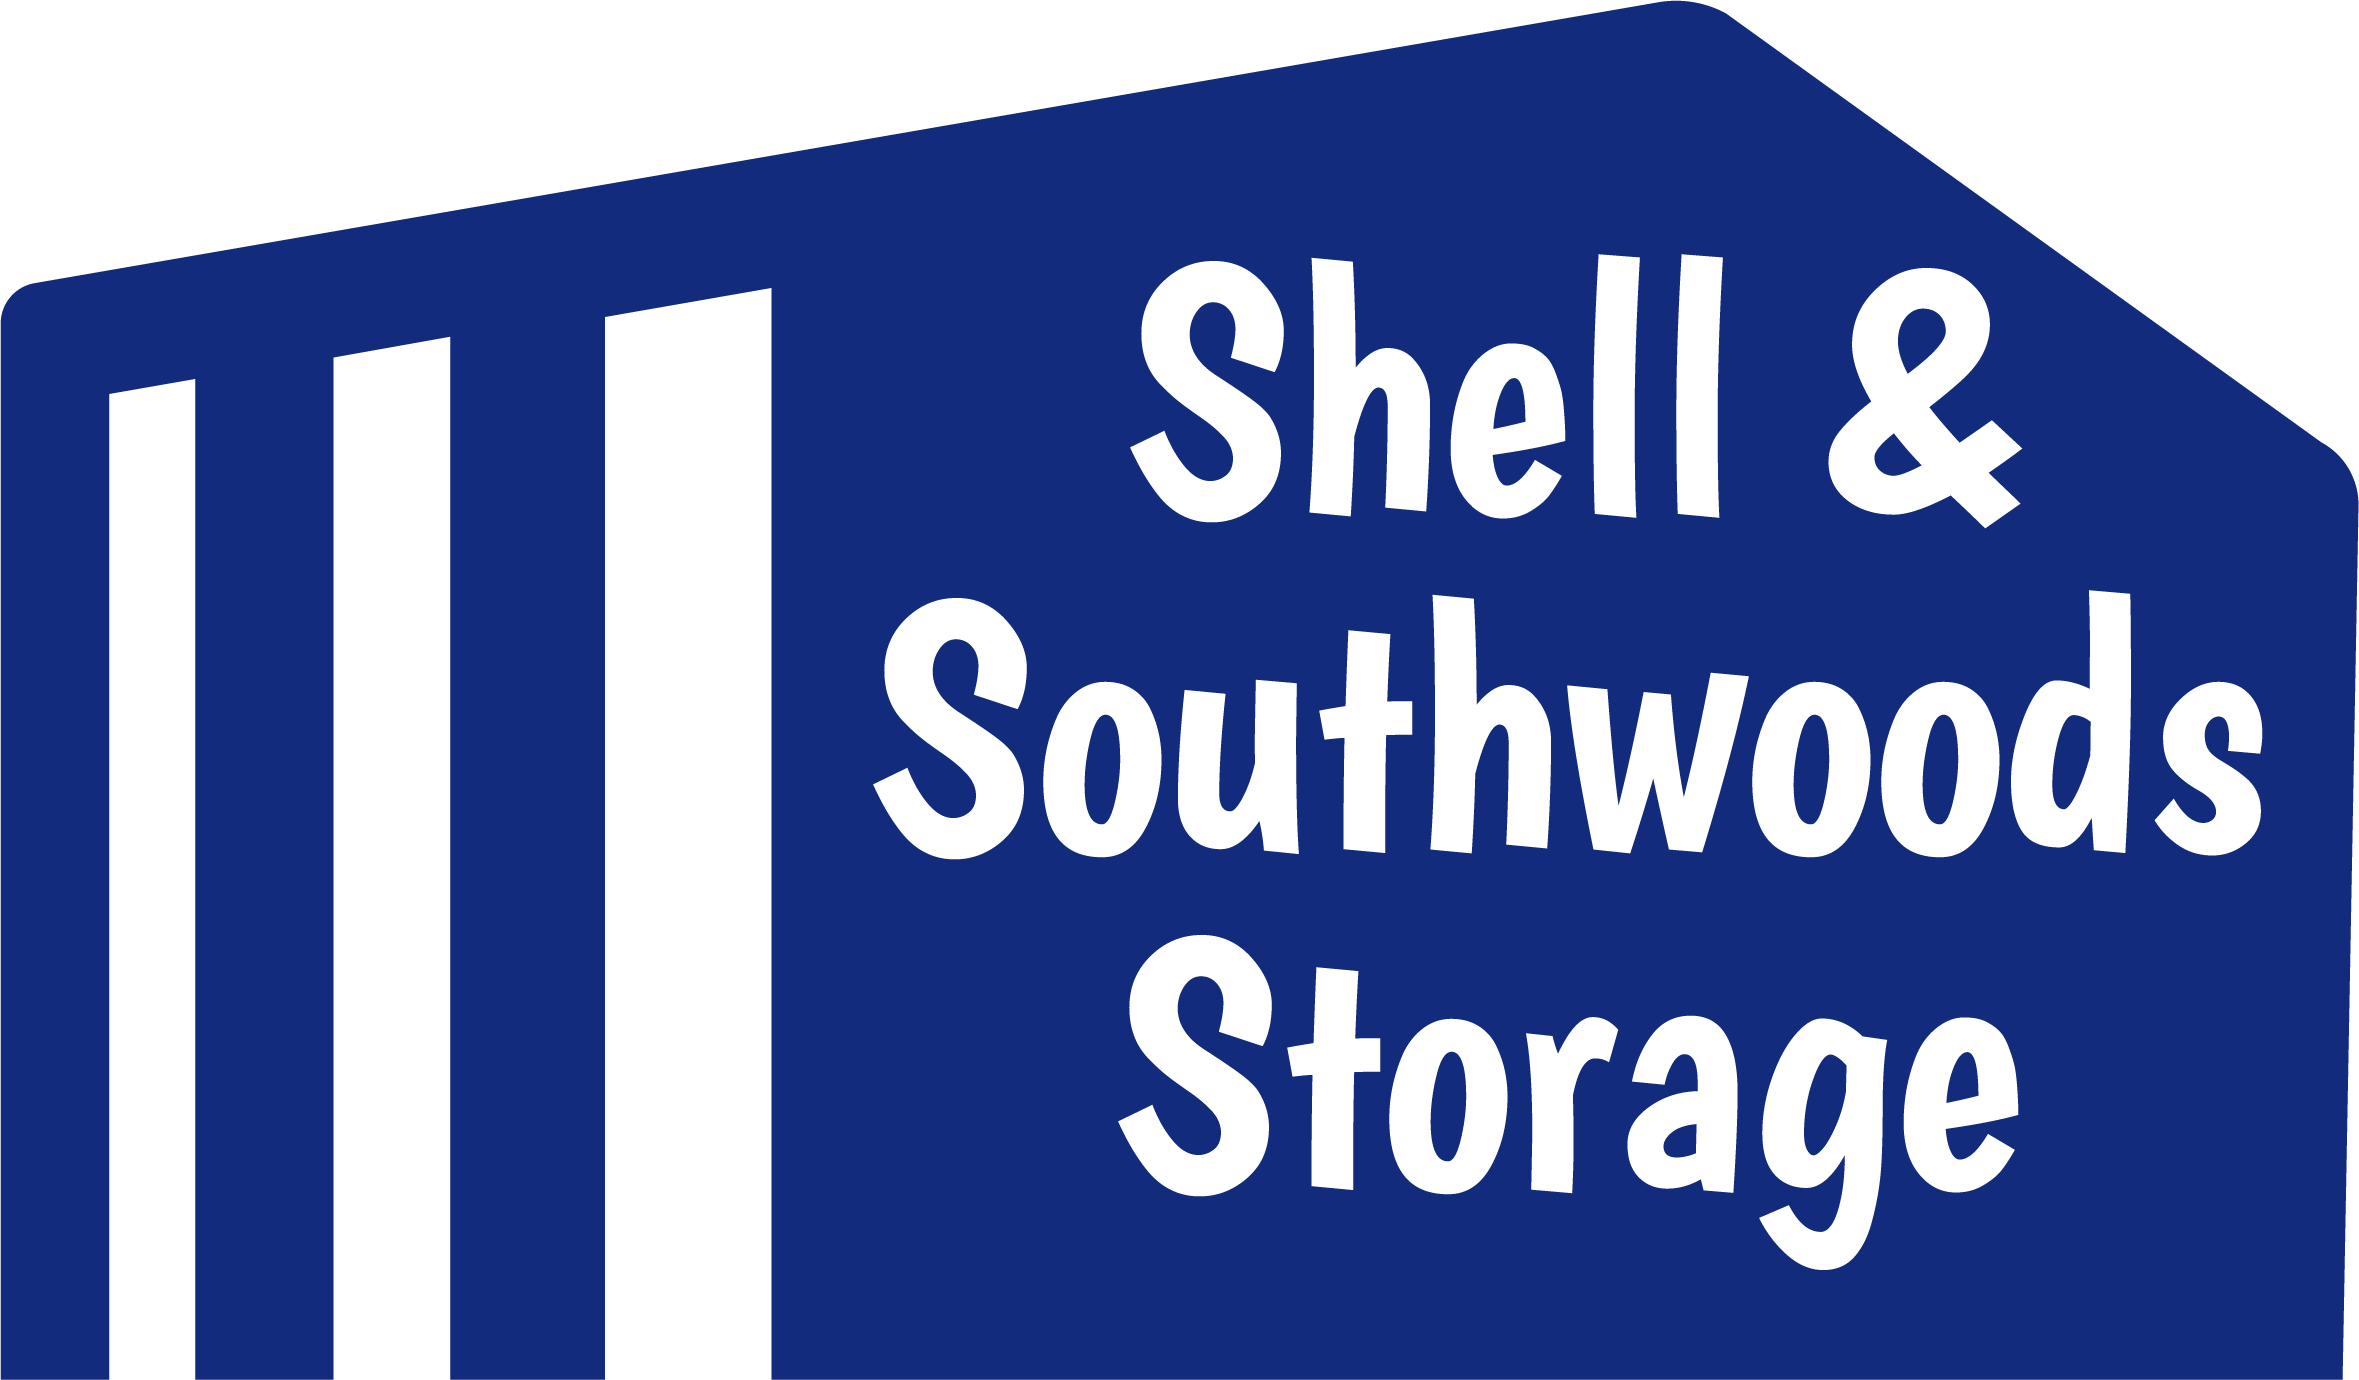 Shell & Southwoods Storage Logo